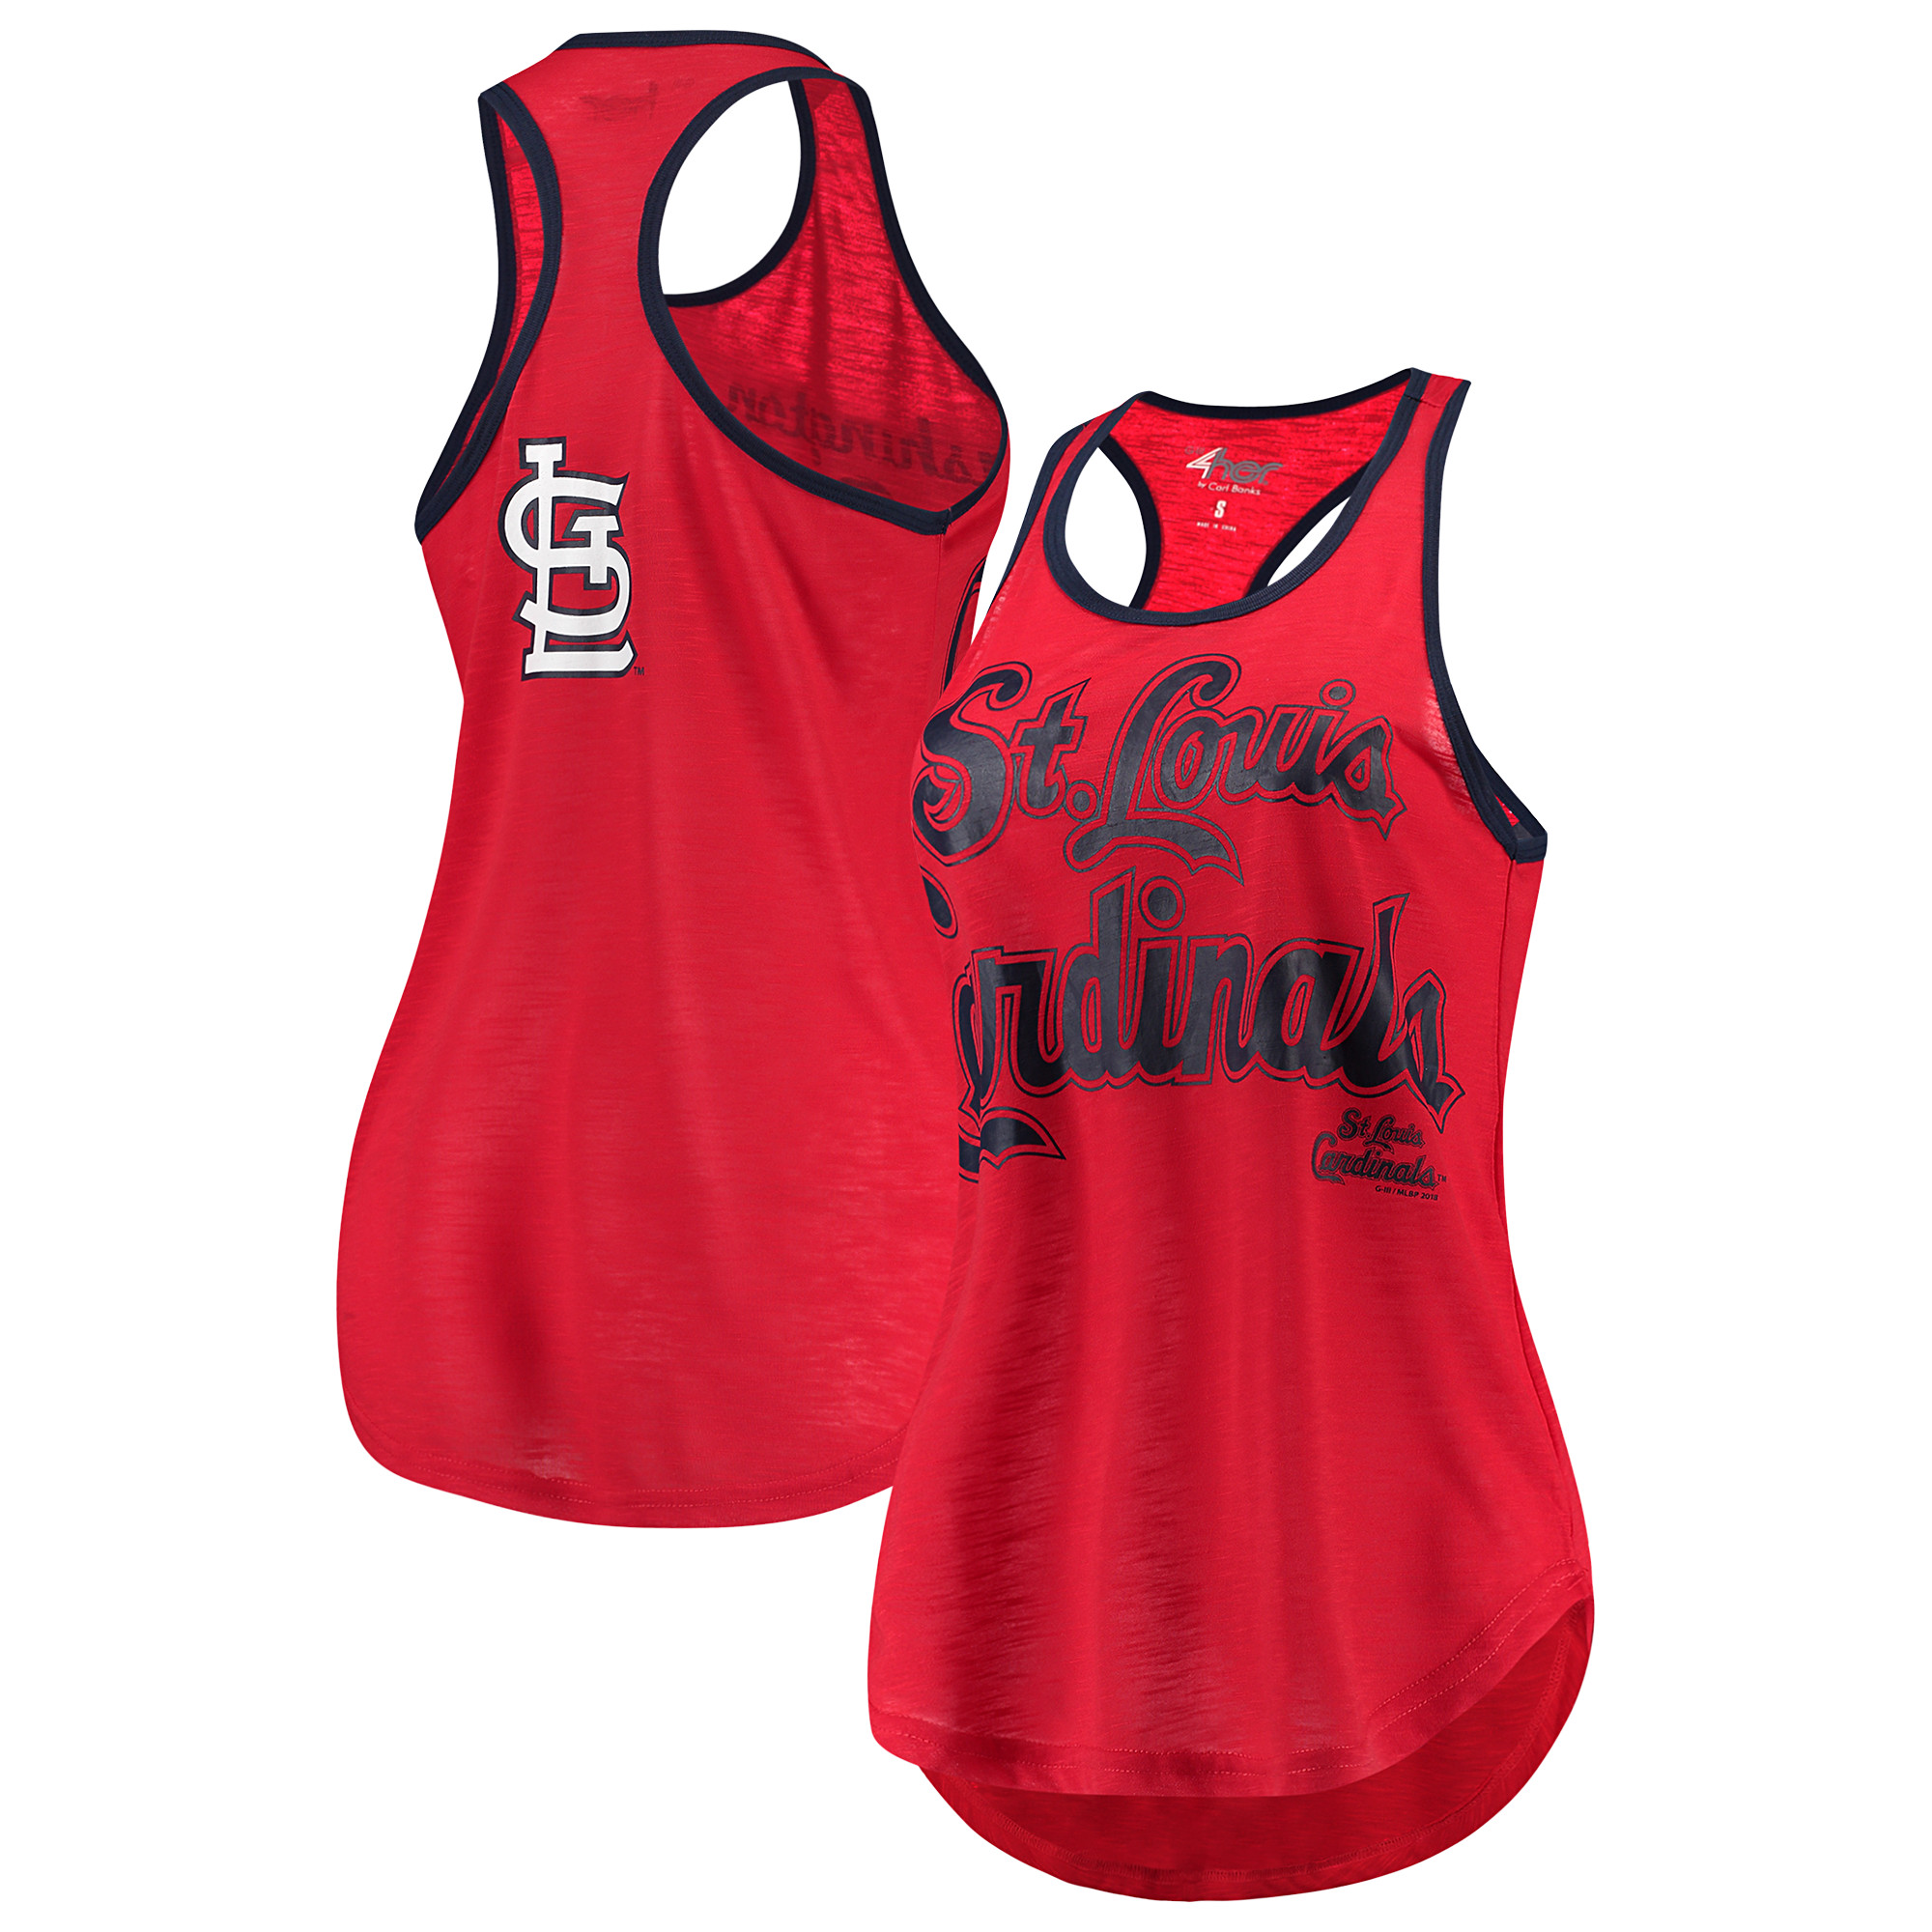 St. Louis Cardinals G-III 4Her by Carl Banks Women's Game Time Tank Top - Red/Navy